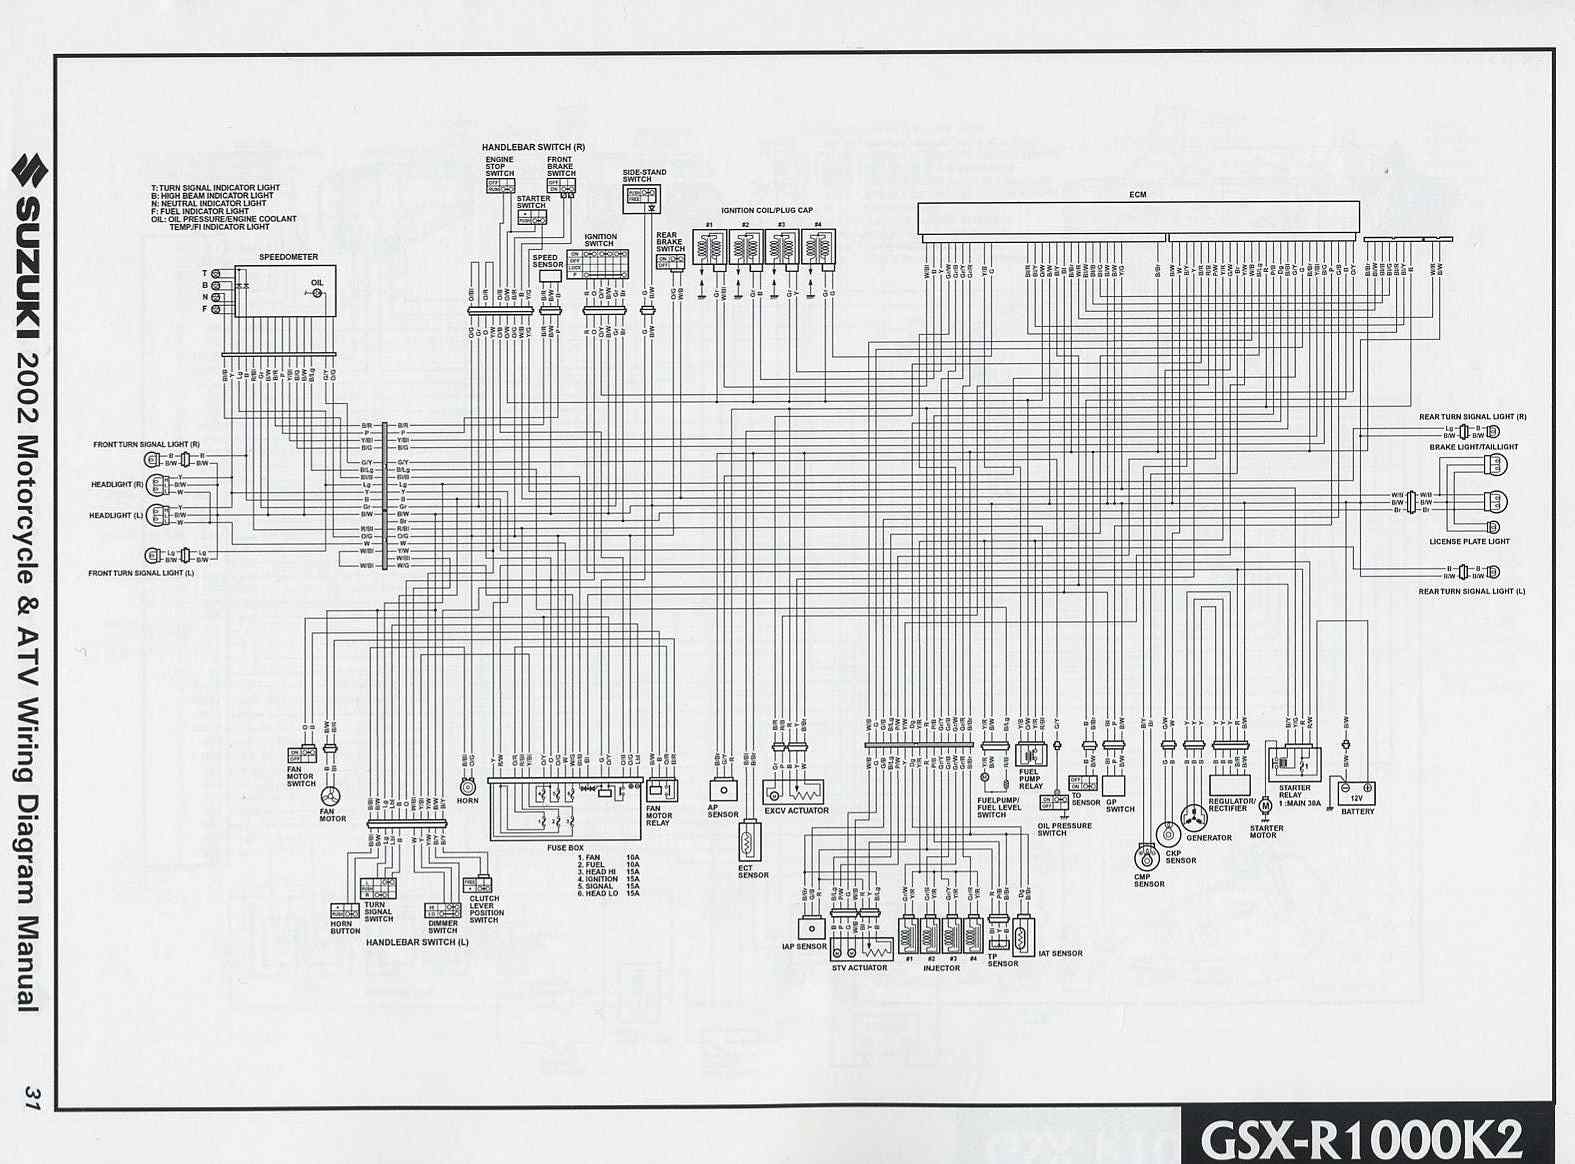 Nc700x Wiring Diagram Doing The New Way 3 Switch Schematic Diagrams For Residential Cbr1000rr Schematics Rh Mychampagnedaze Com Electrical Simple